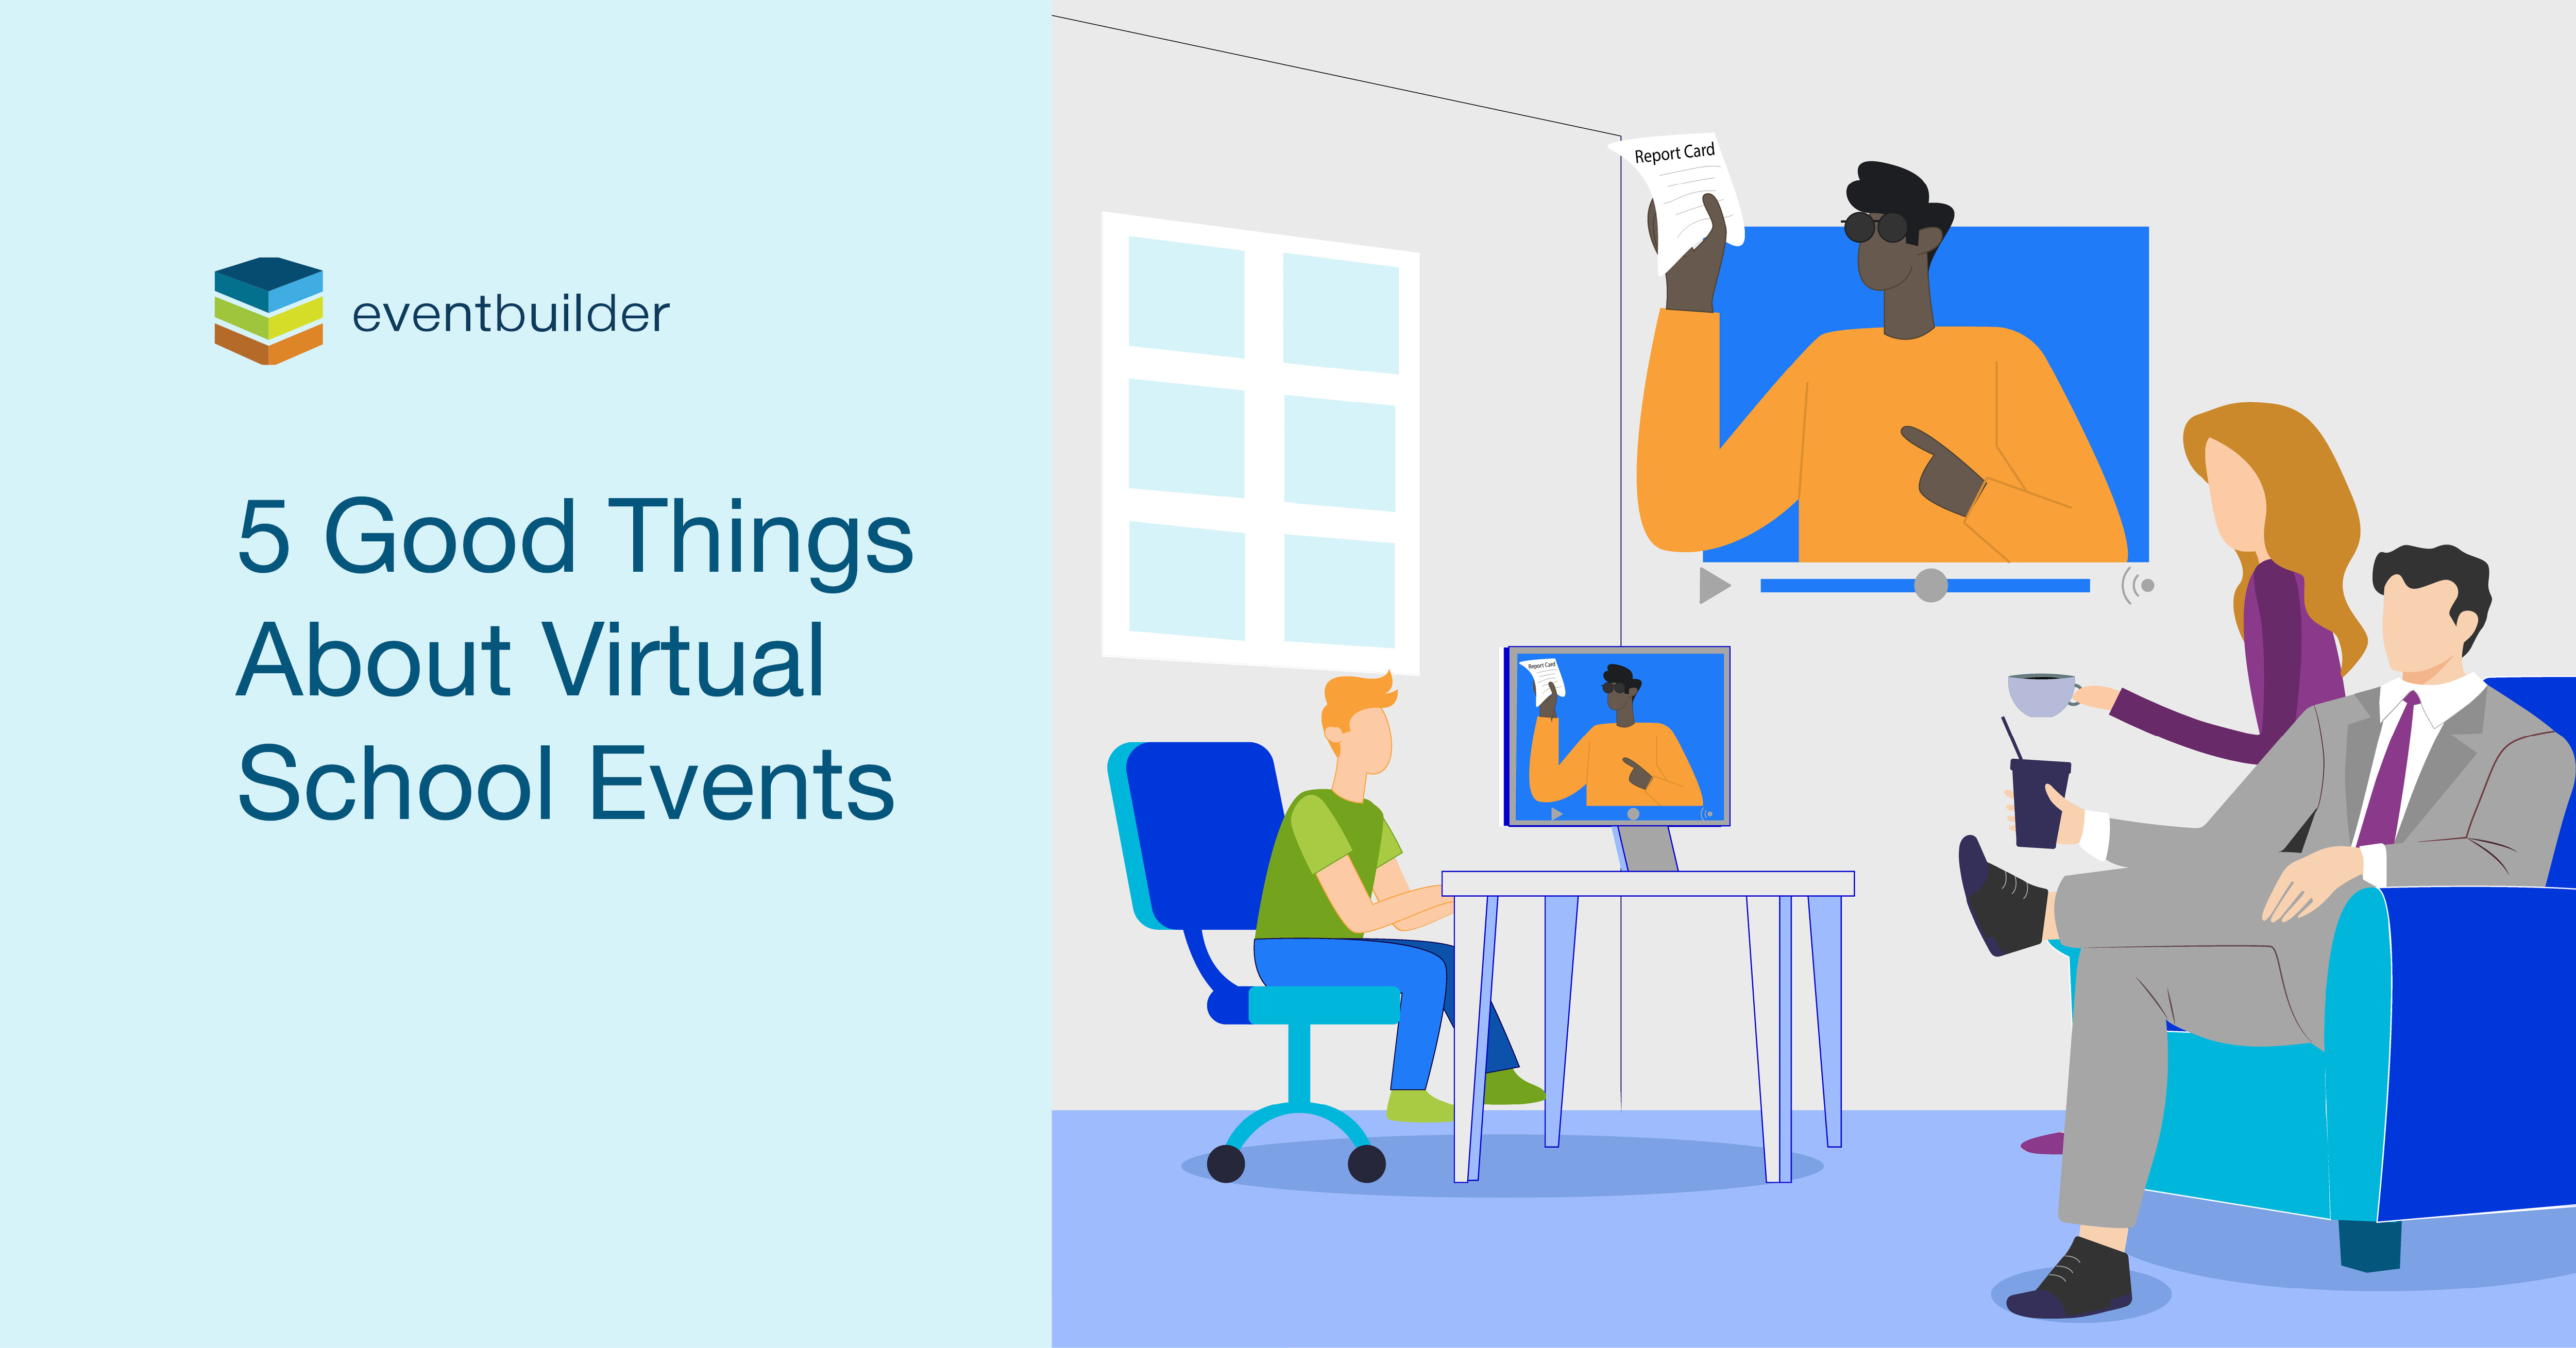 5 Good Things About Virtual School Events